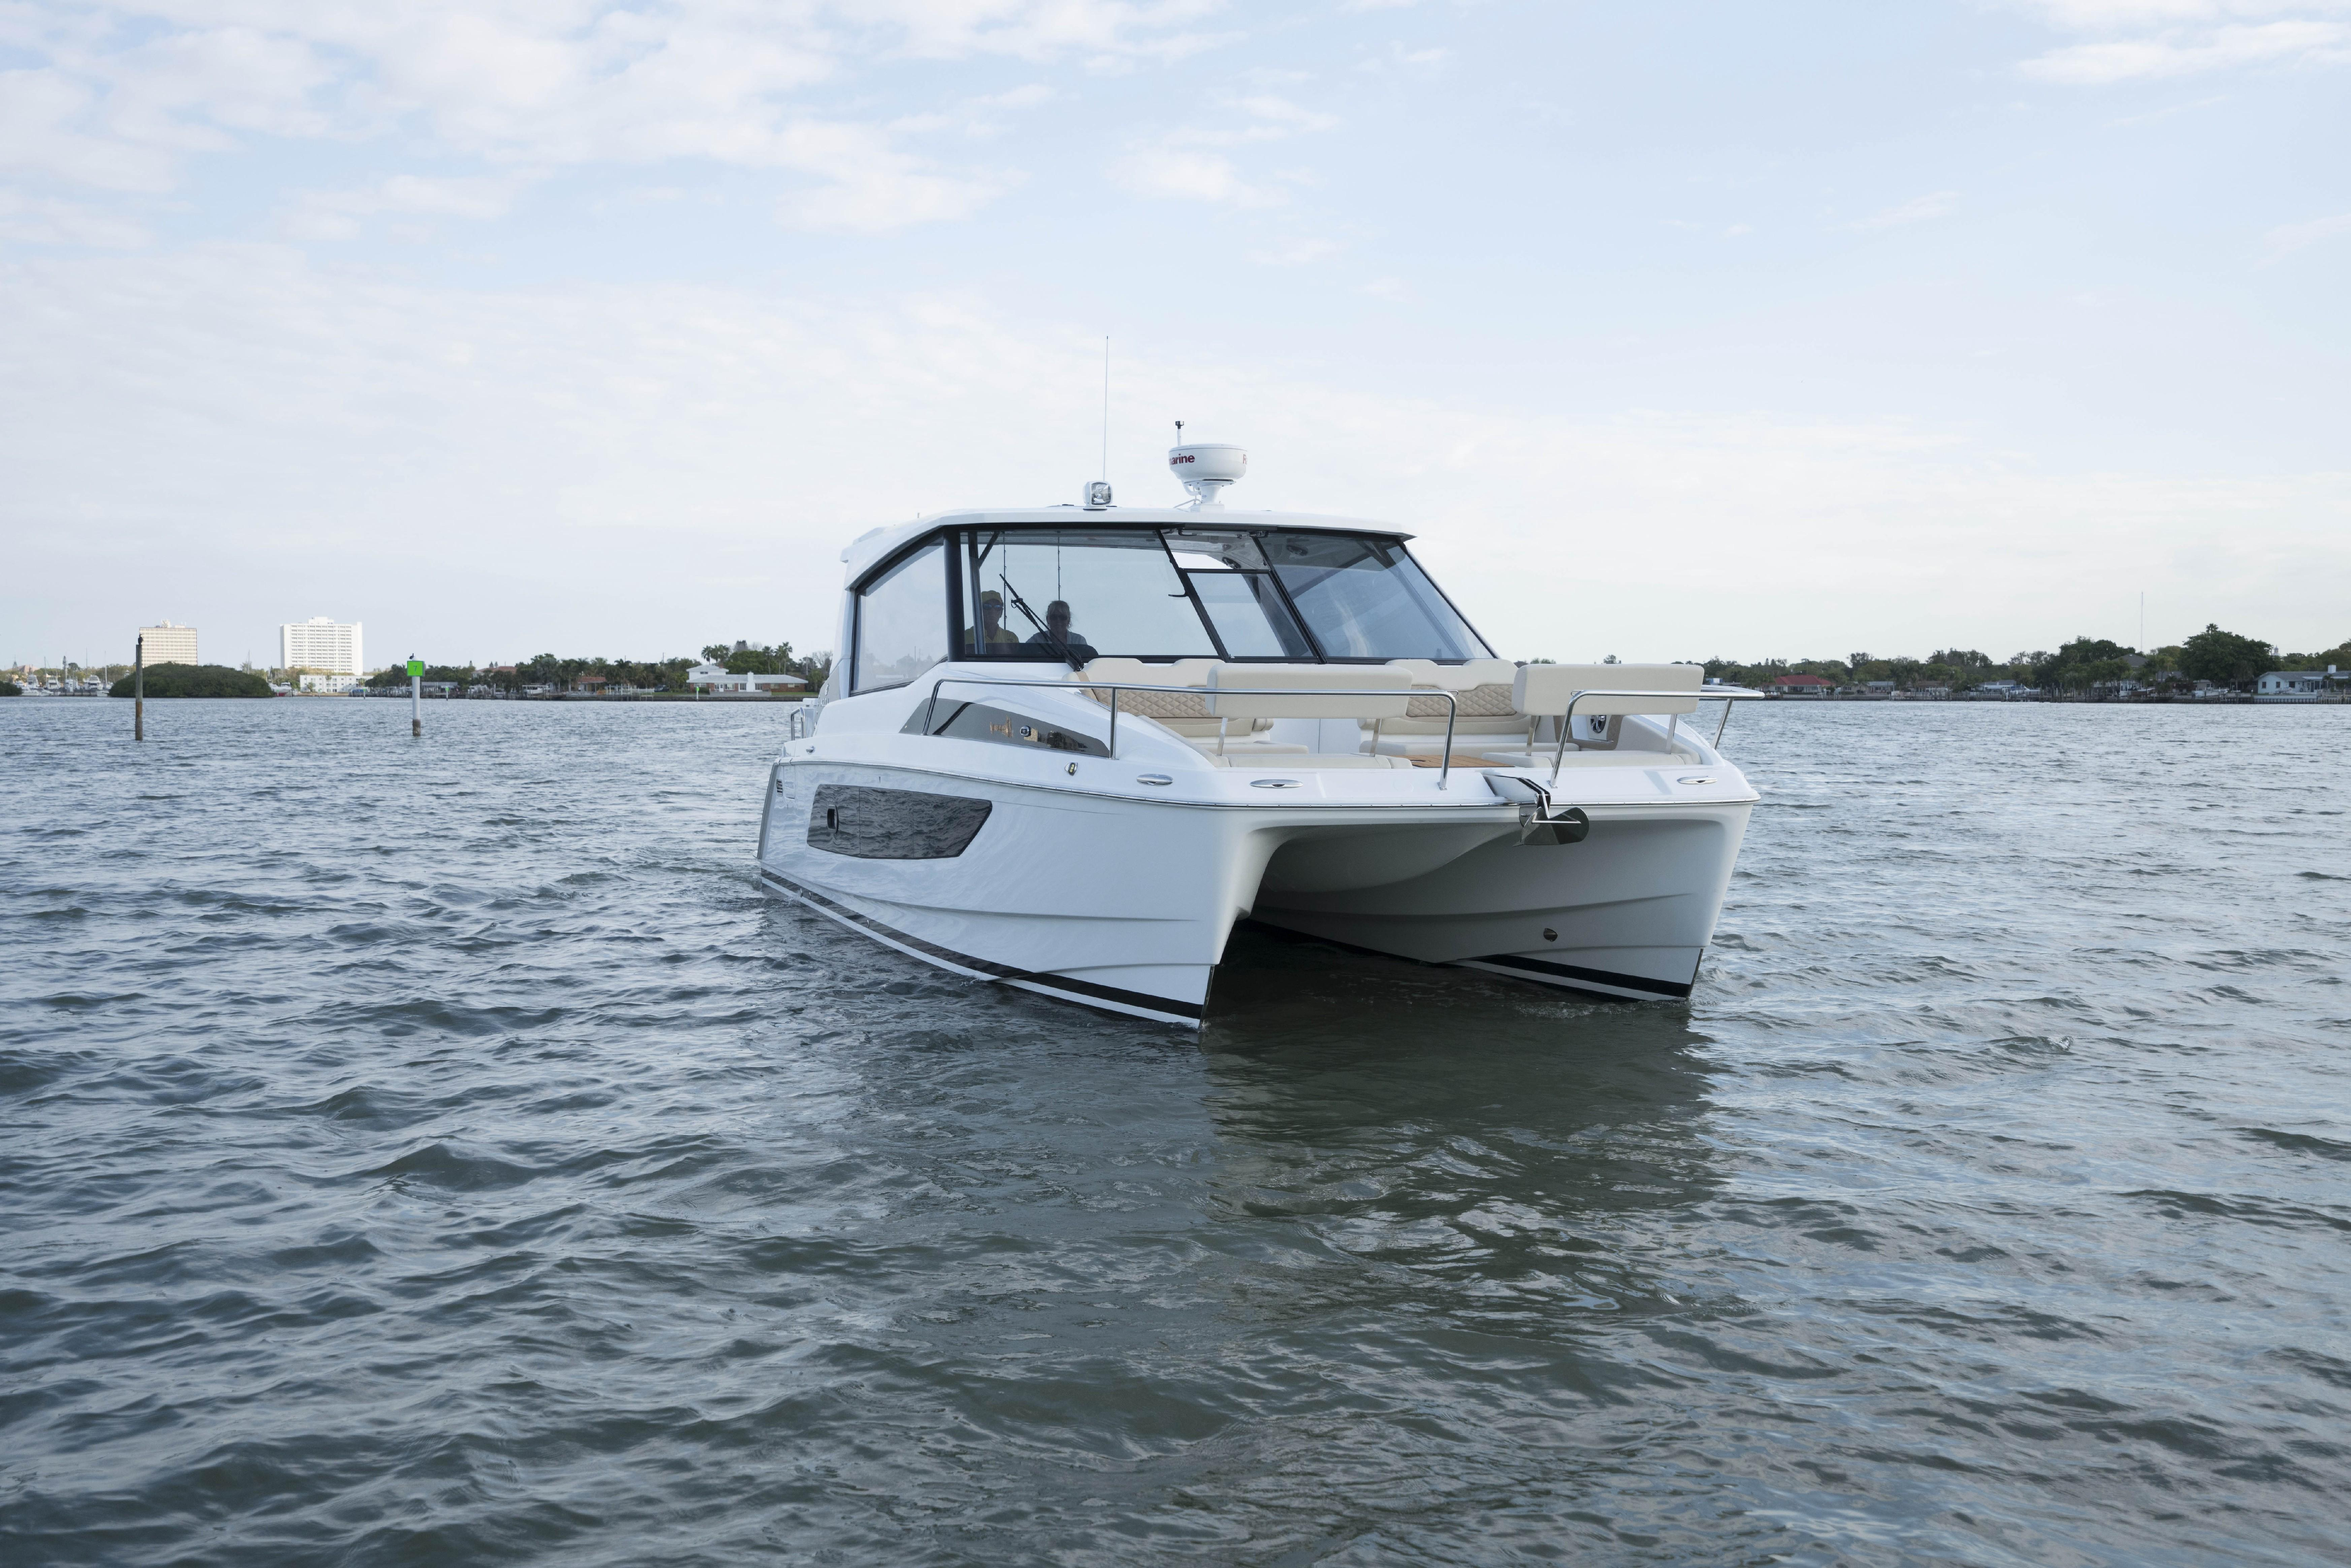 2019 Aquila 36 Fishing and Diving